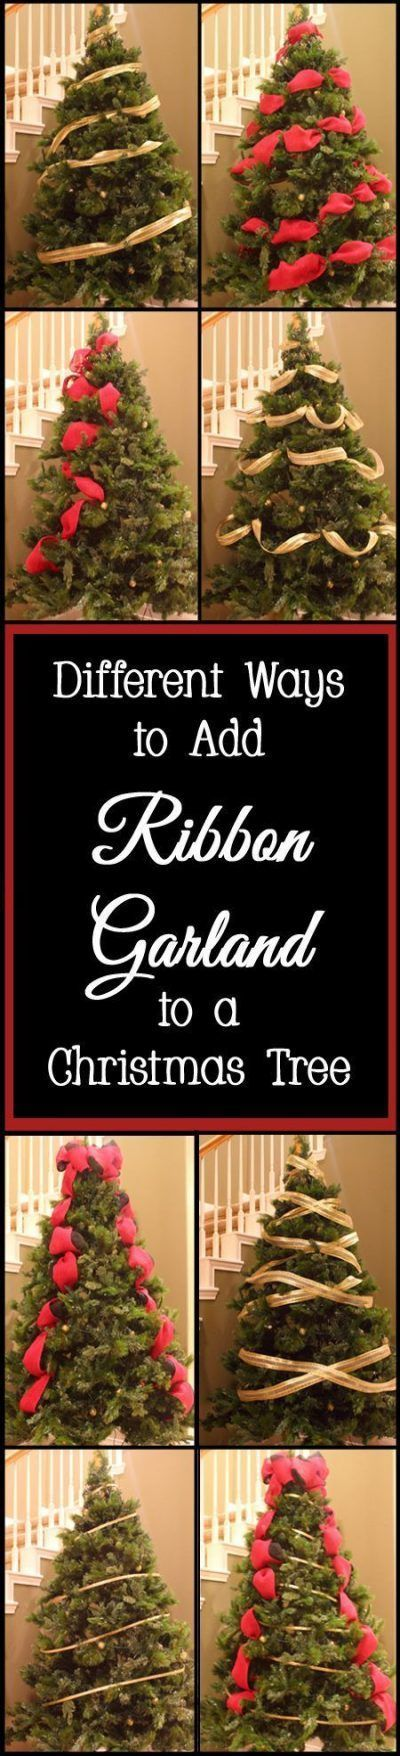 19 New Ideas For Christmas Tree Ideas Decoration Ribbons #ribbononchristmastreeideas 19 New Ideas For Christmas Tree Ideas Decoration Ribbons #tree #ribbononchristmastreeideas